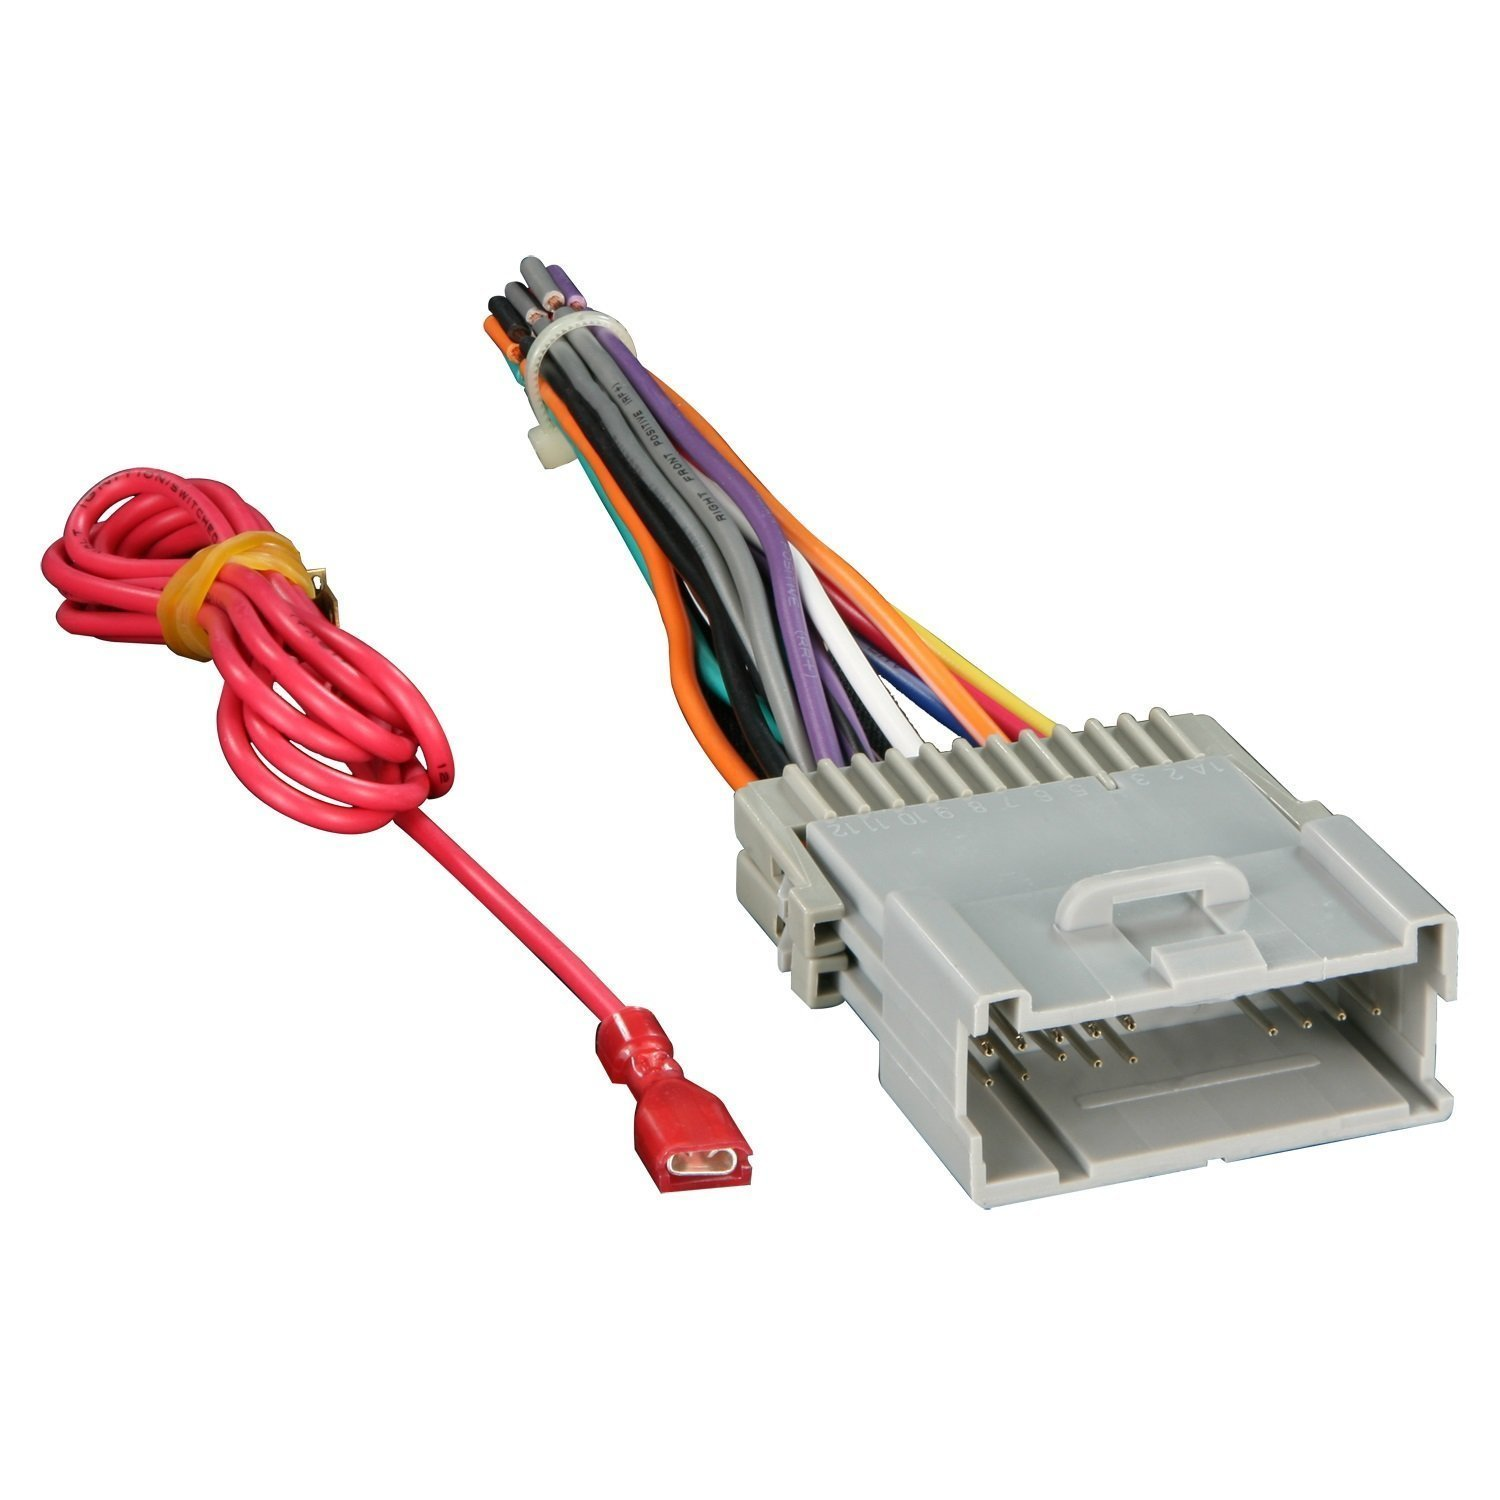 61Kq8z3w WL._SL1500_ amazon com kenwood dpx302u double 2 din cd mp3 car stereo metra 70-1761 receiver wiring harness at edmiracle.co